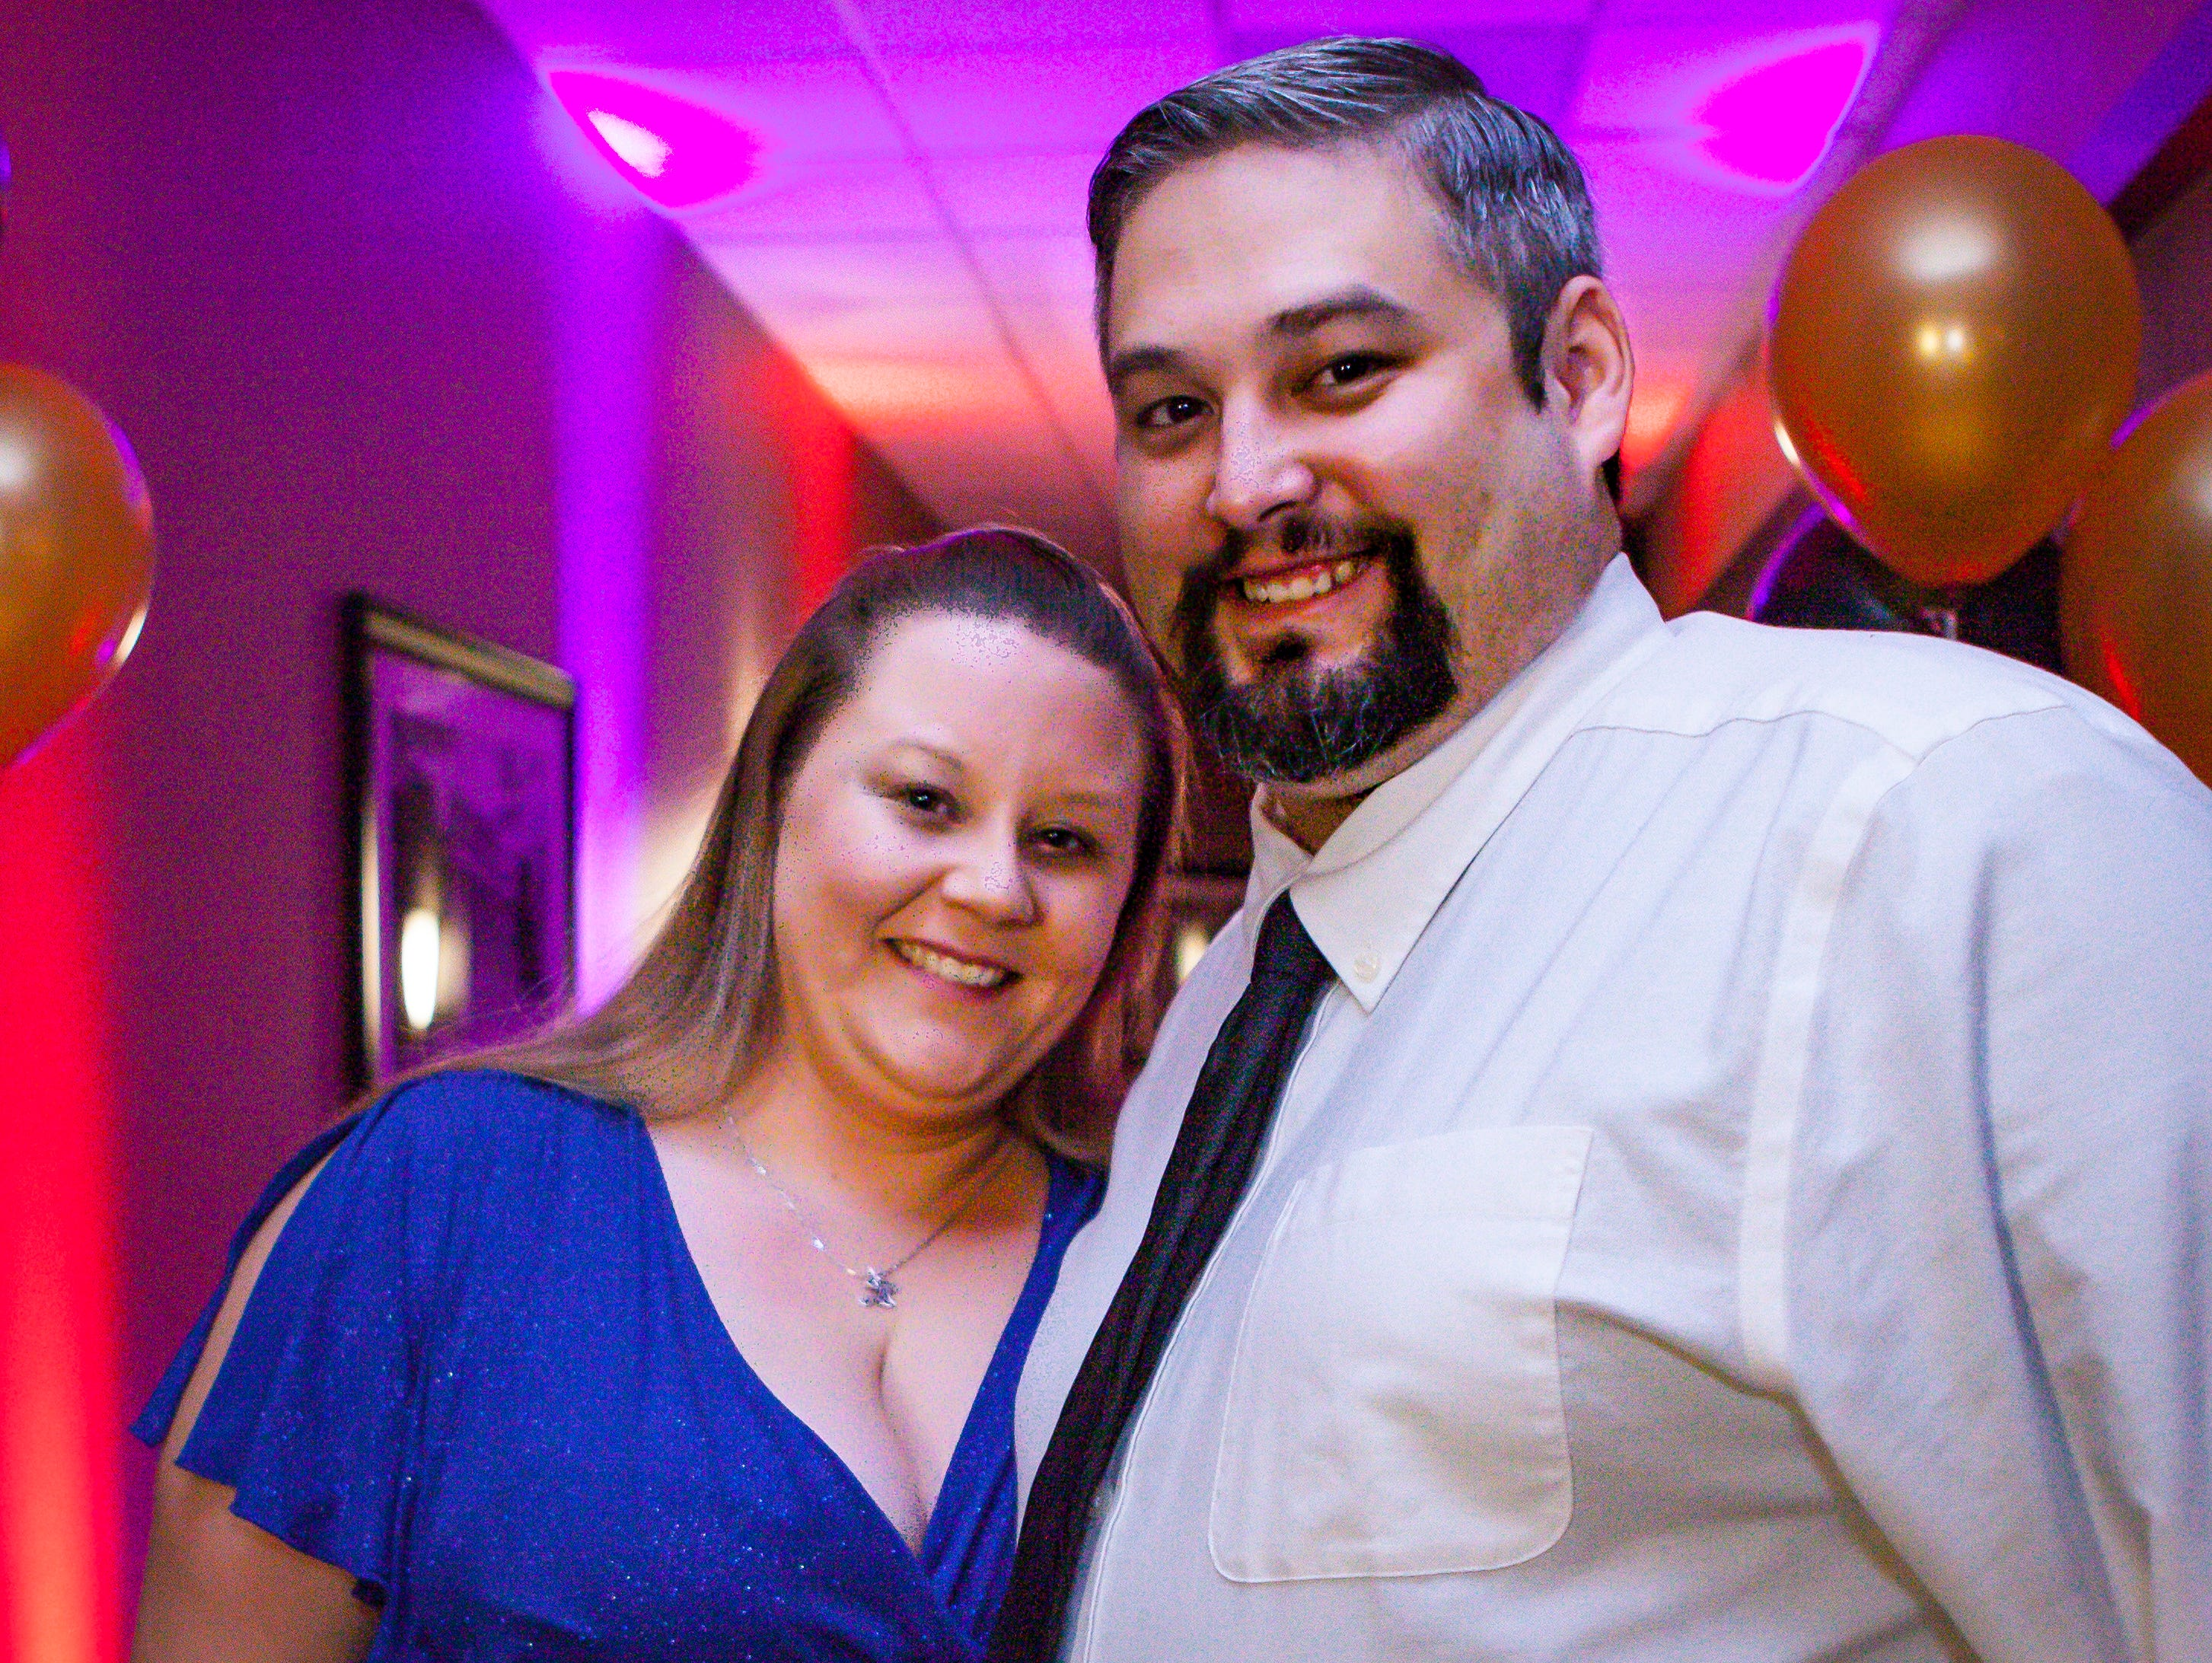 Jessica and Jared Unger at the Pyramid Foundation's Shimmer and Shine New Year's Eve party, held at DoubleTree Hotel in Murfreesboro.